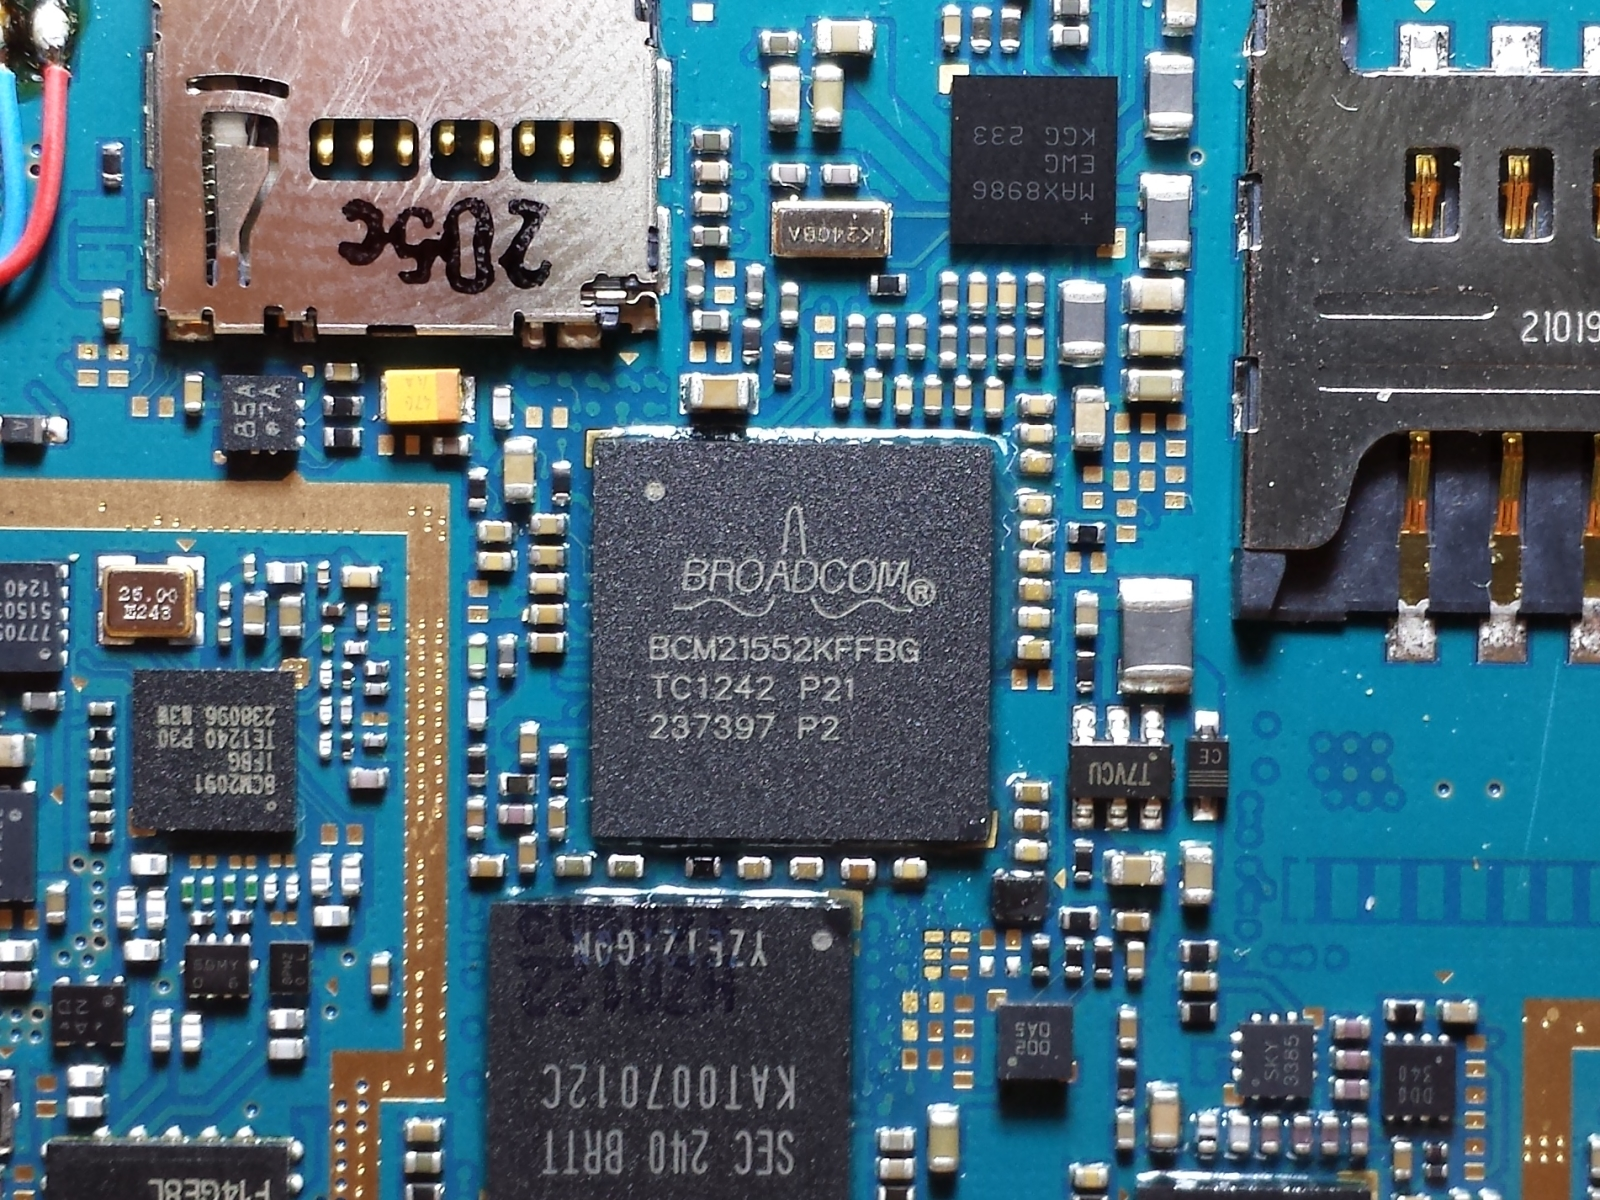 File:Samsung Galaxy Y S5360 Broadcom-BCM21552 SoC.jpg - Wikimedia Commons